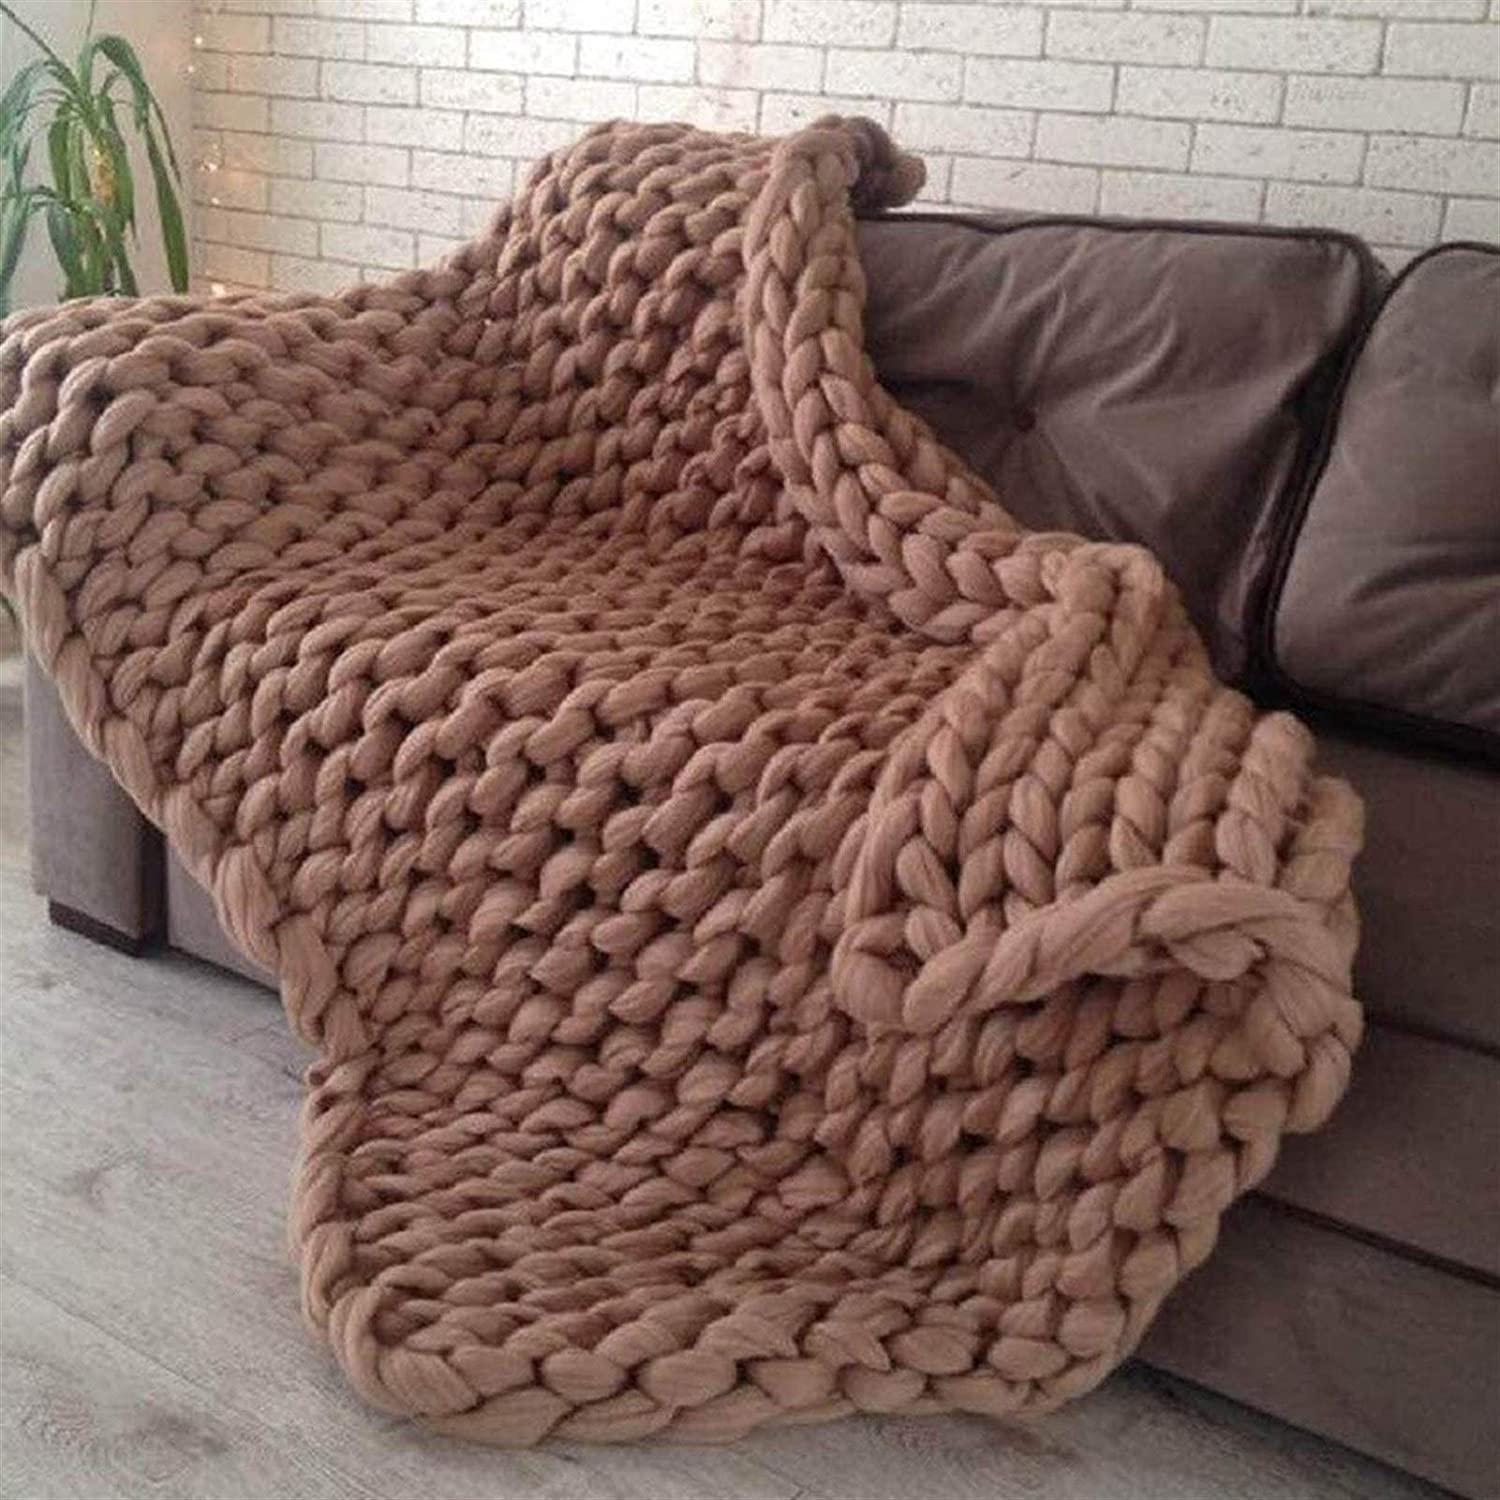 JGYZD Knitted favorite Blanket Blend Arm Knit Super Bombing free shipping Large Throw